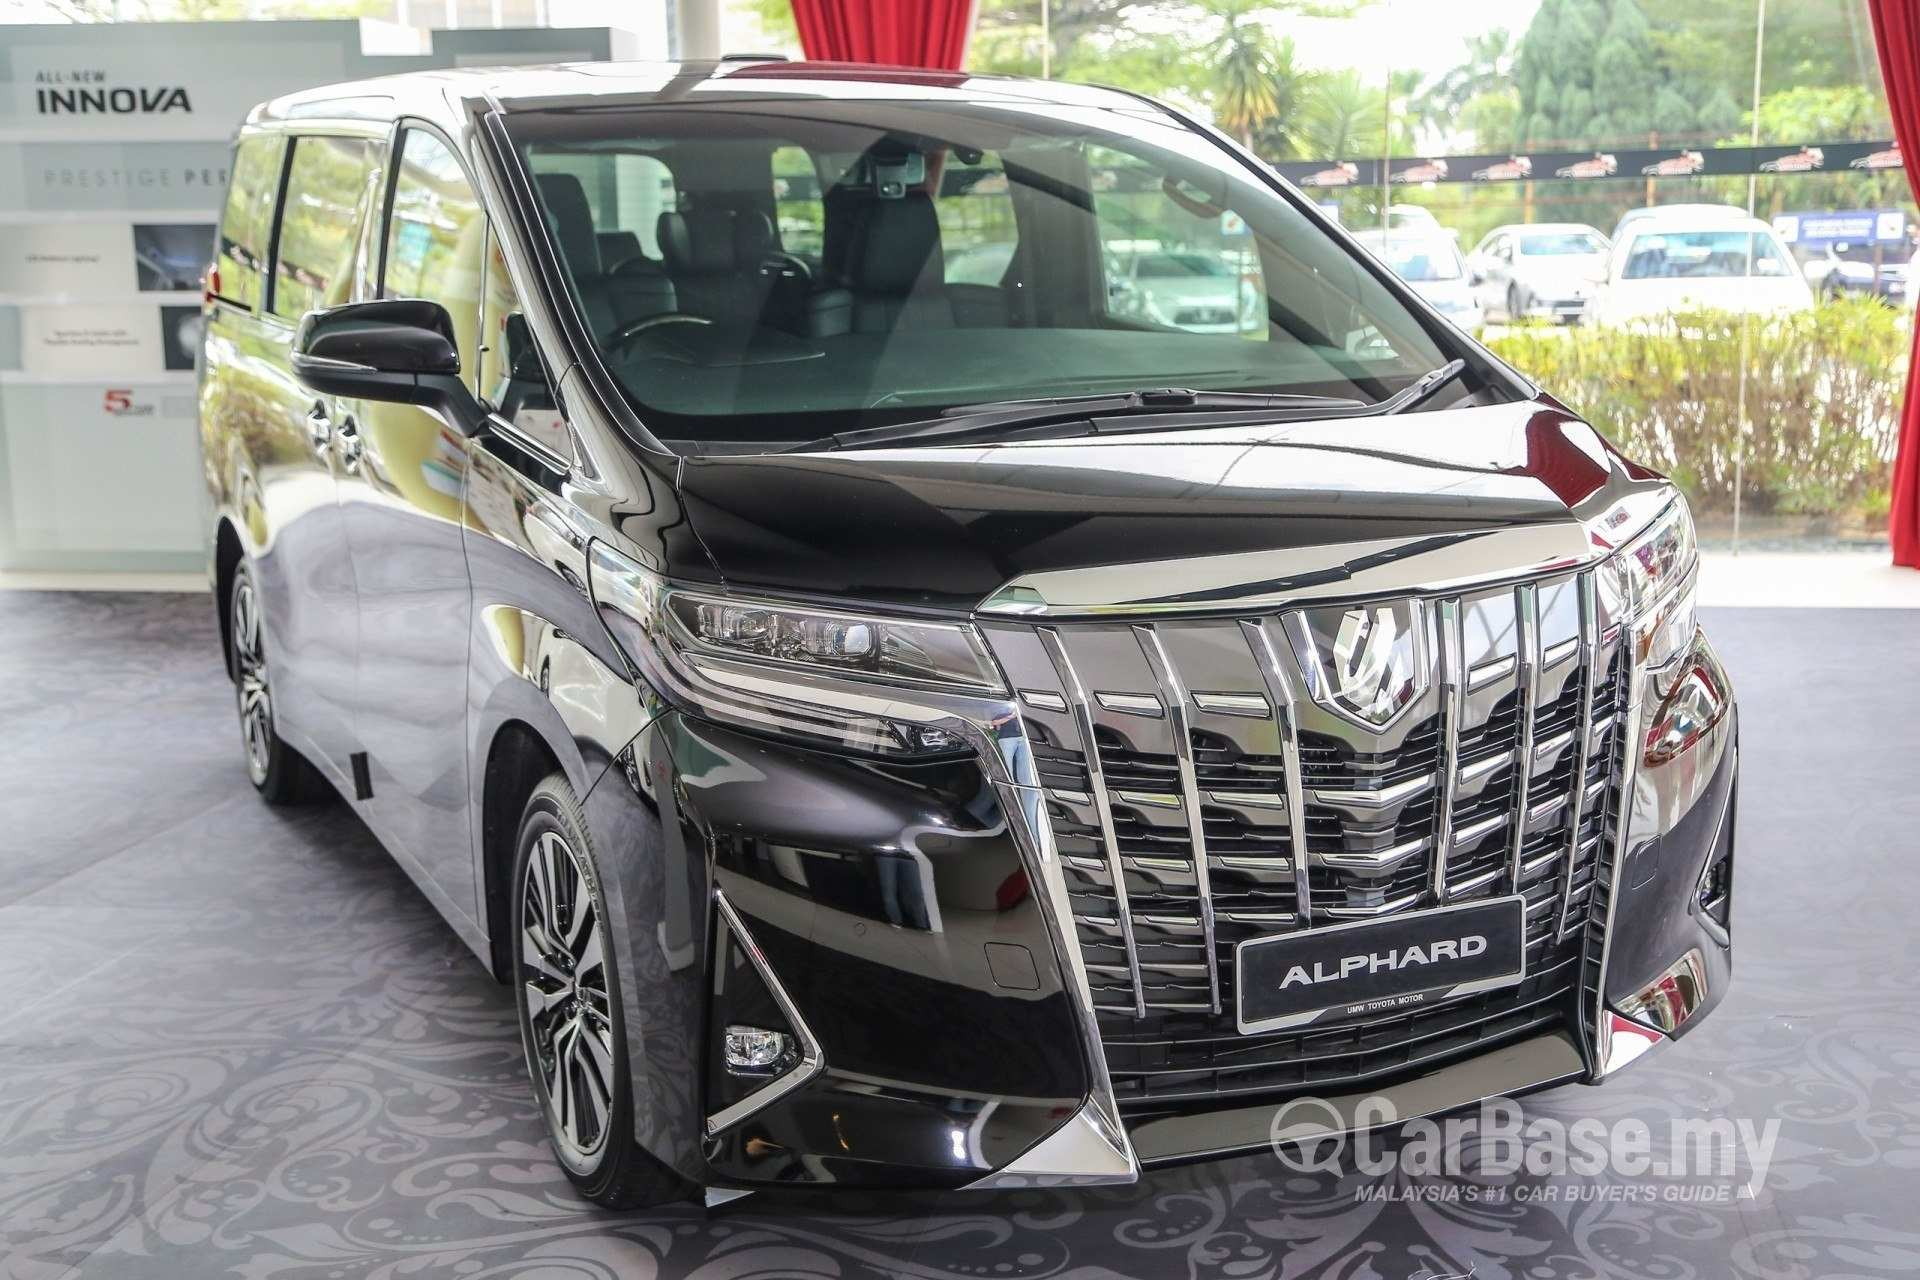 61 The 2020 Toyota Alphard Performance